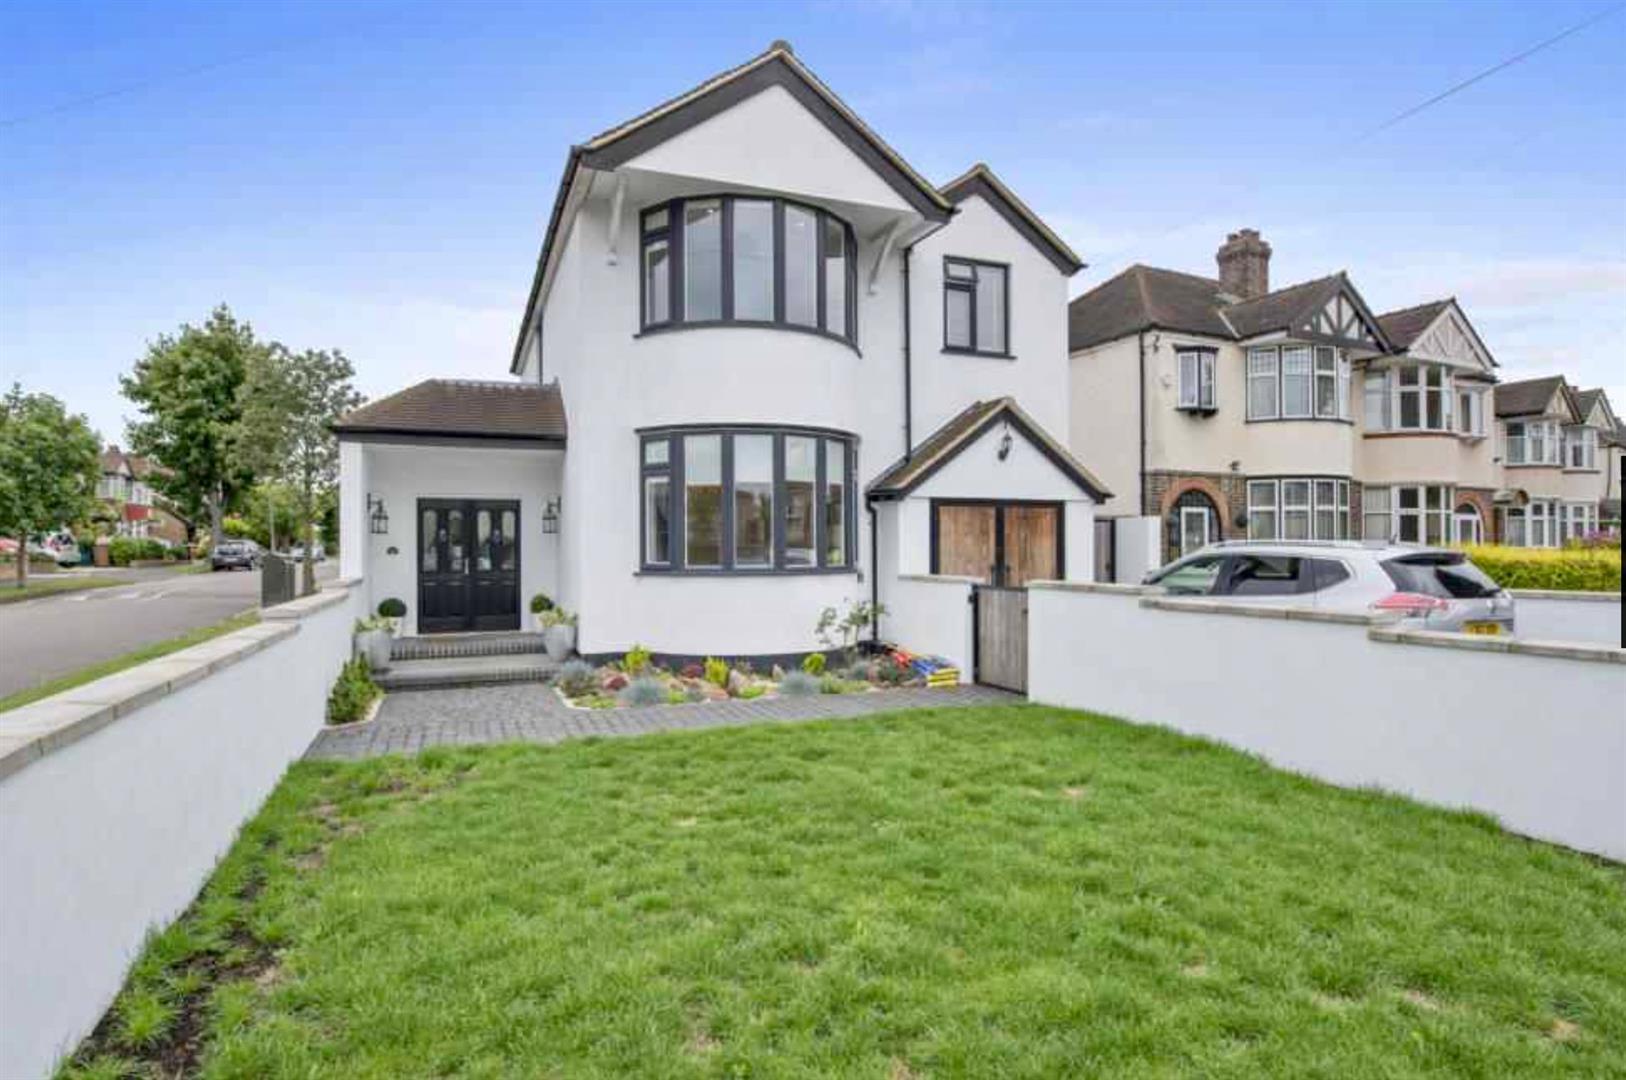 4 Bedrooms House for sale in Ruskin Drive, Worcester Park,KT4